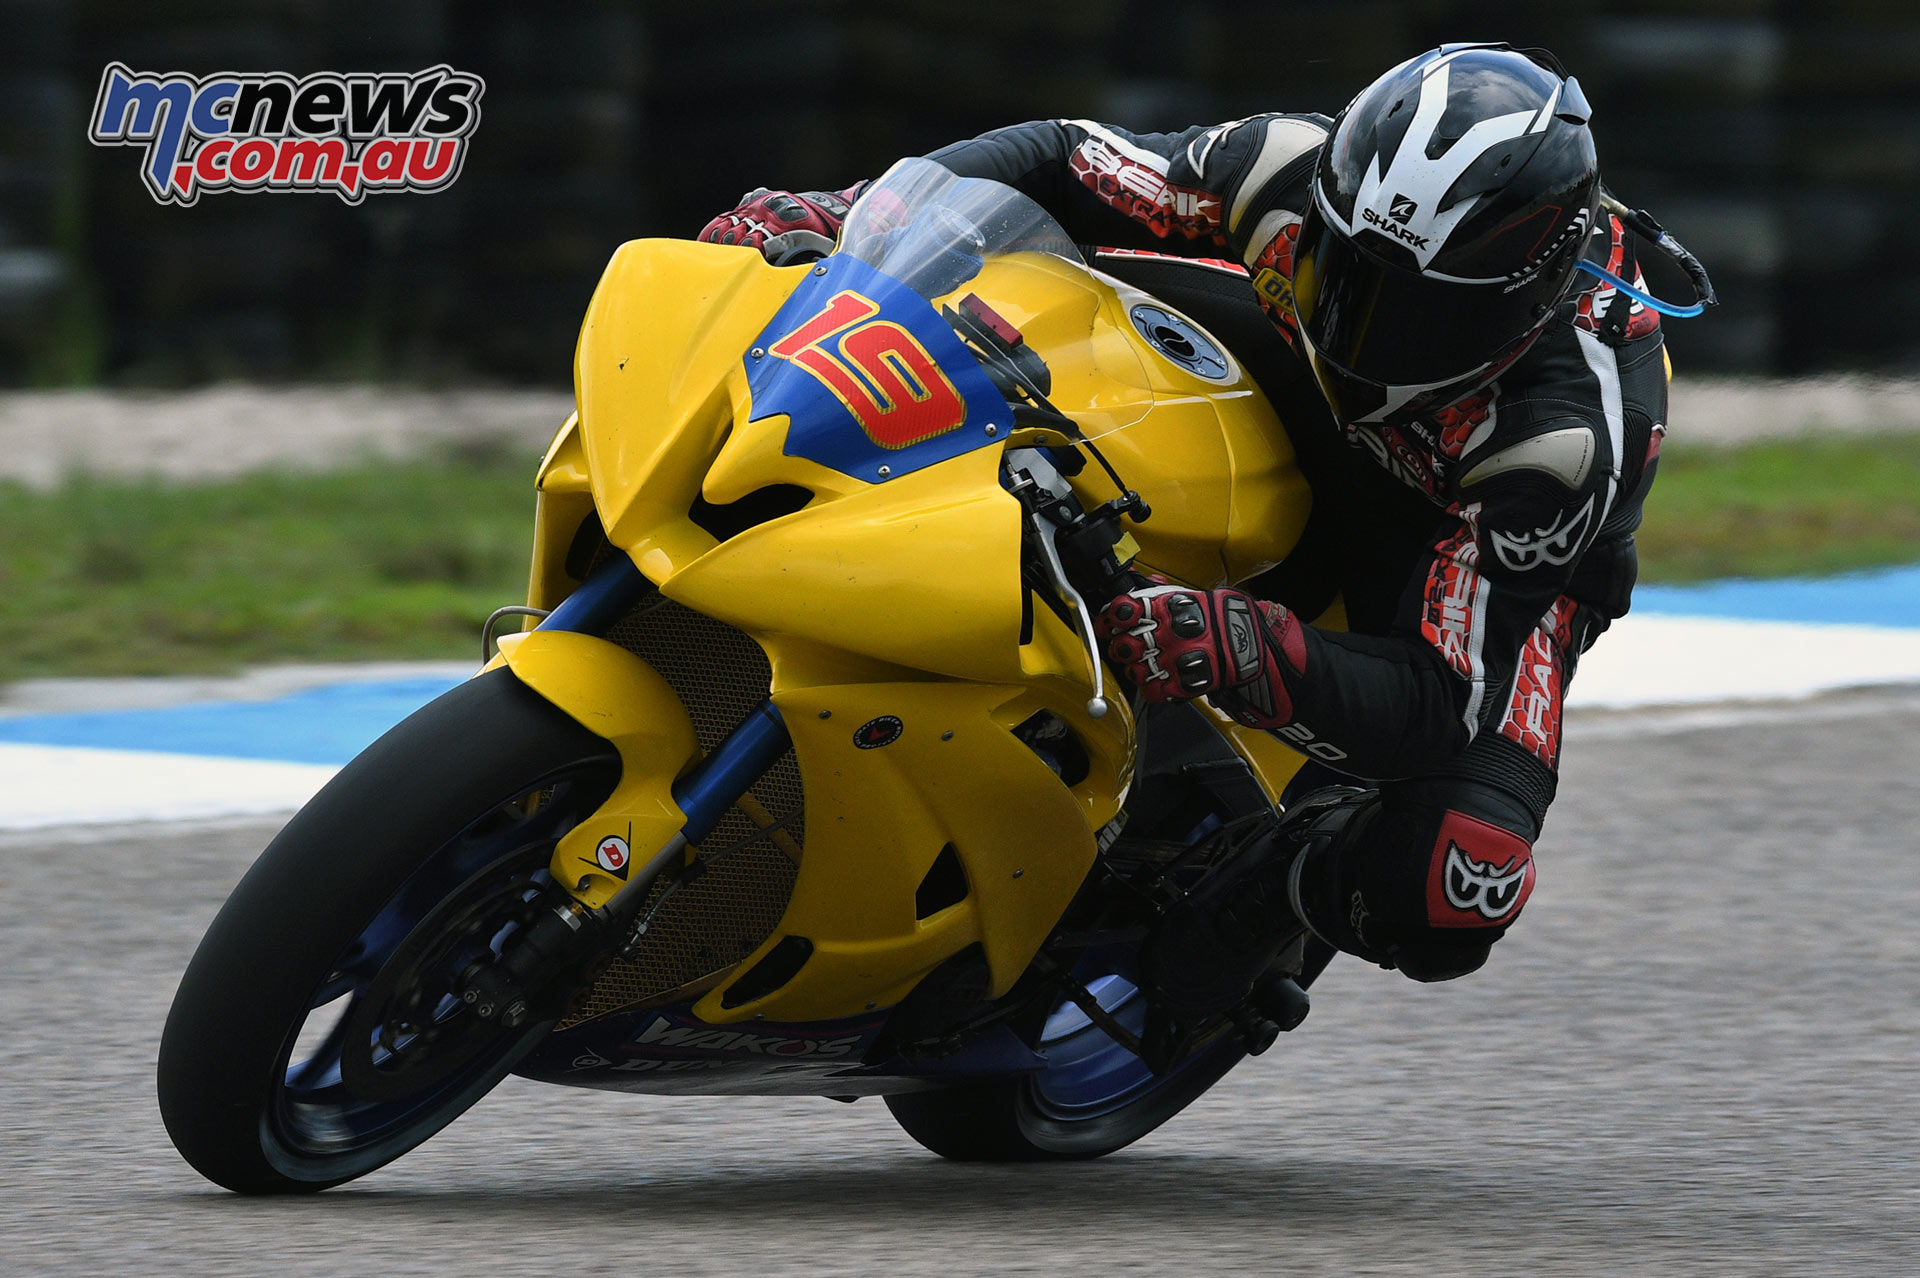 Aaron Morris raced on board a second hand race machine purchased just the week before the opening ARRC round. He was originally slated to ride Anthony West's supersport machine.